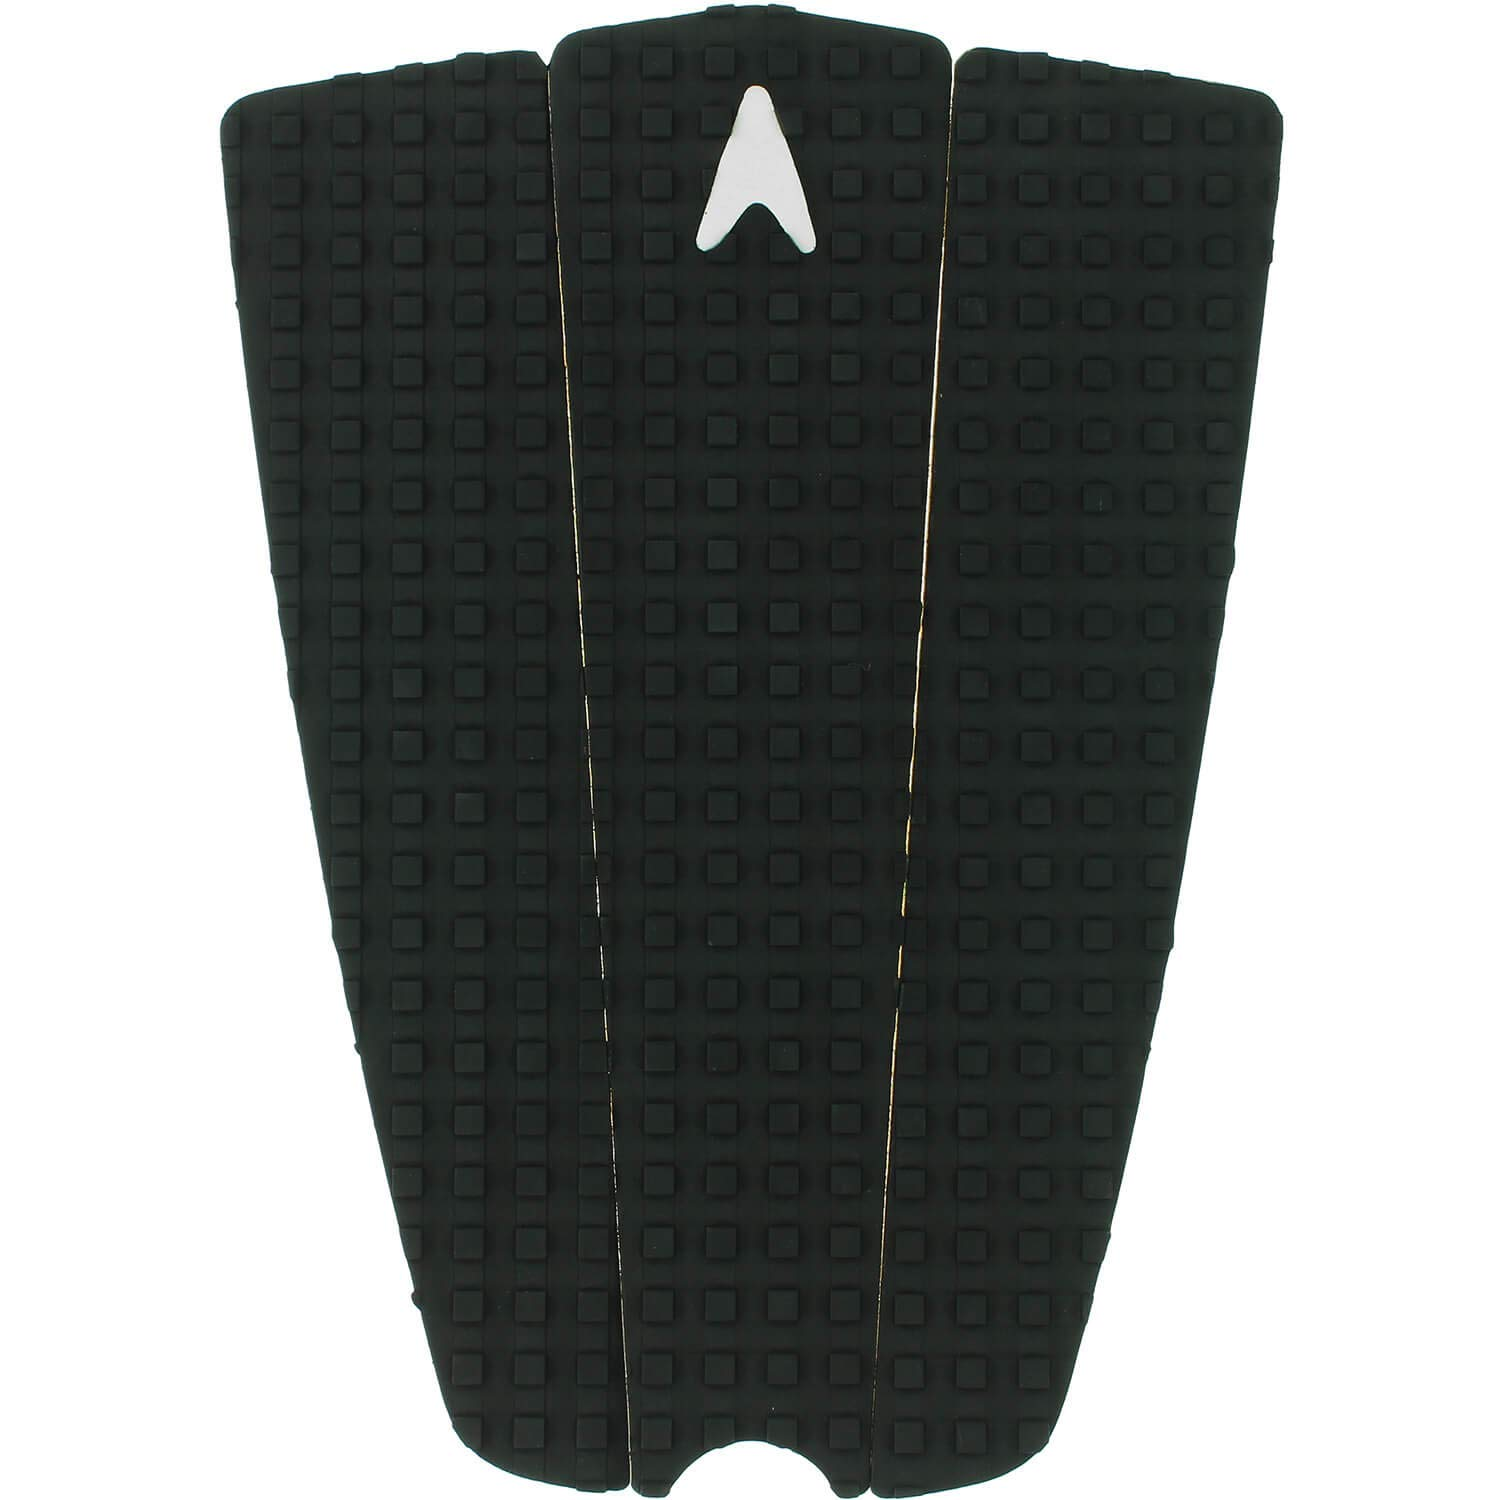 Astrodeck 358 Black Longboard Tail Traction Pad by Astrodeck